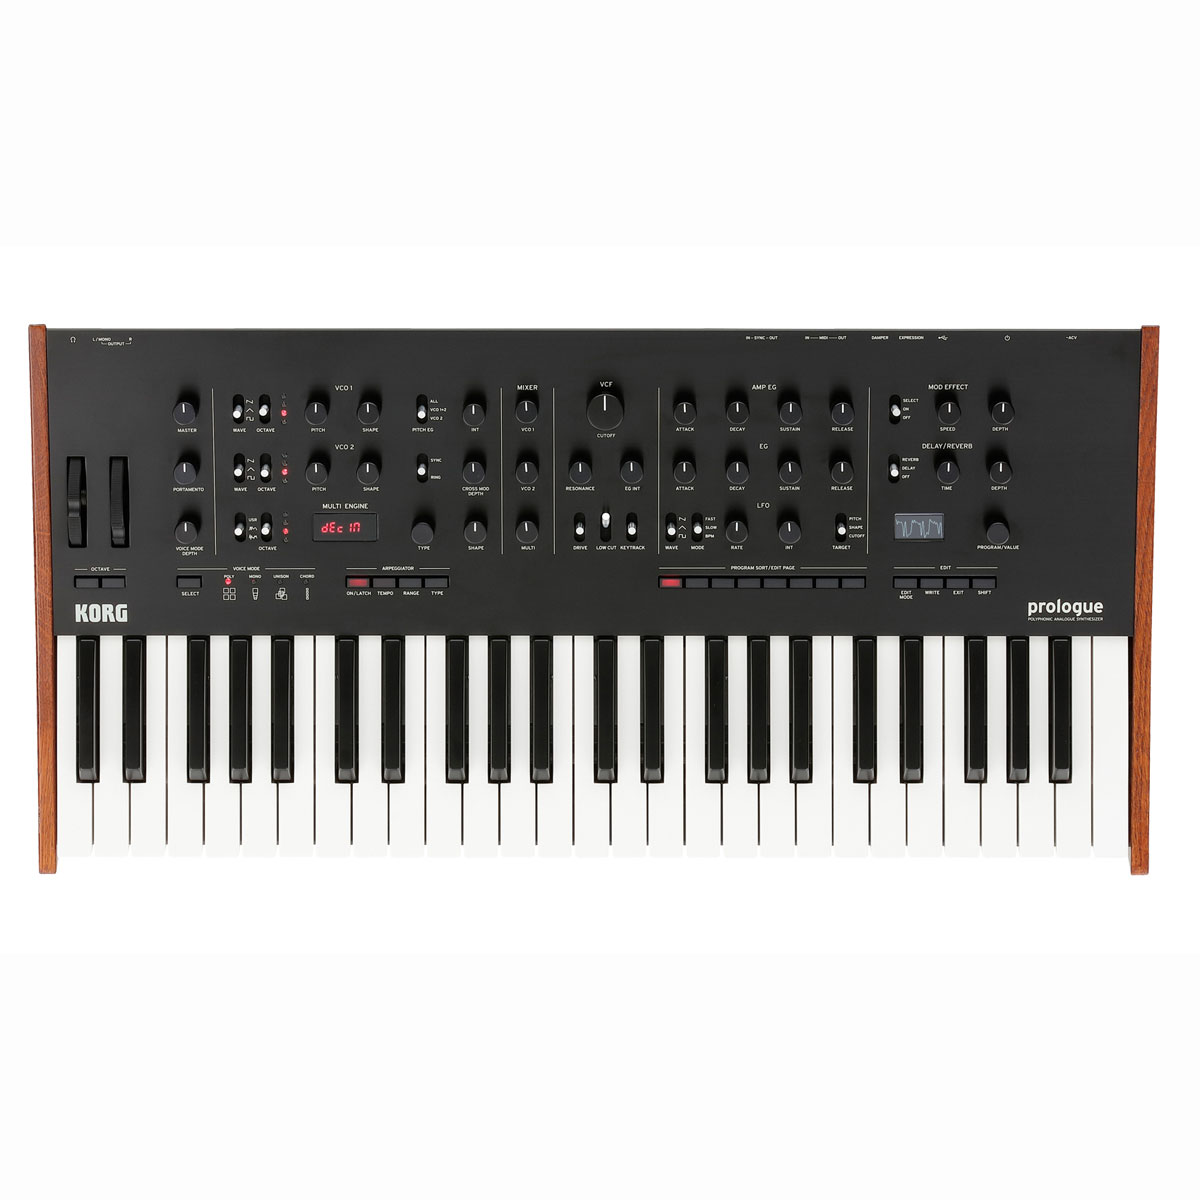 Korg Prologue-8 synthesizer